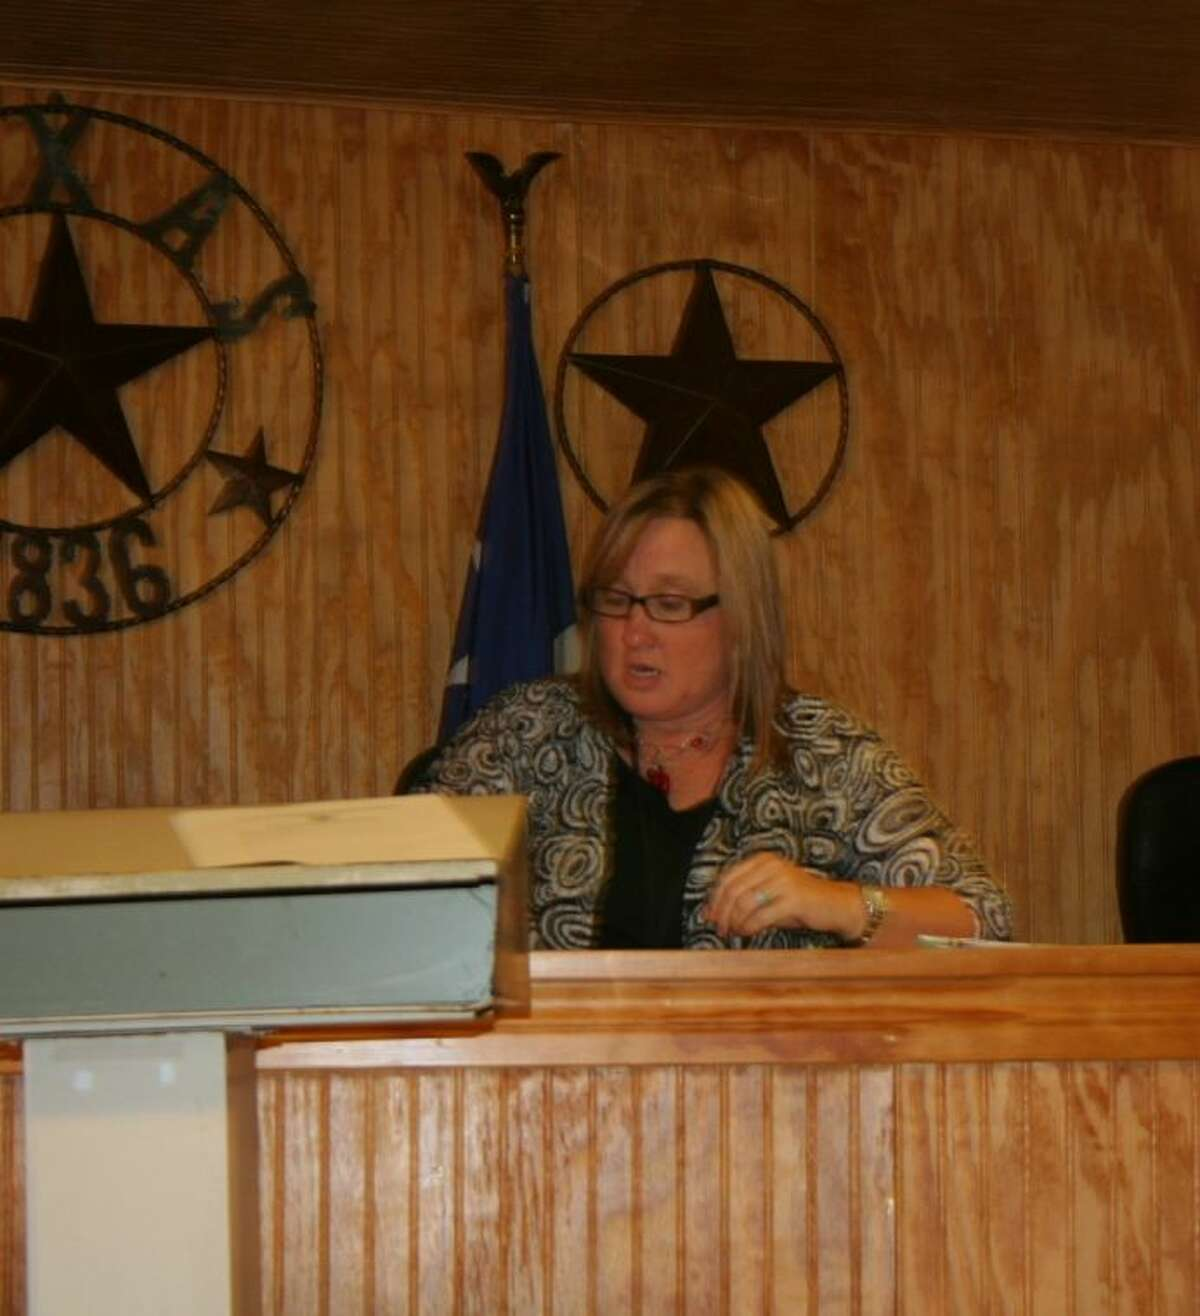 Patton Village Mayor Pro-Tem Leah Tarrant is still in the mayoral seat, as Tuesday's election left her in a tie with Billy Crittenden. No date has been set for the runoff.